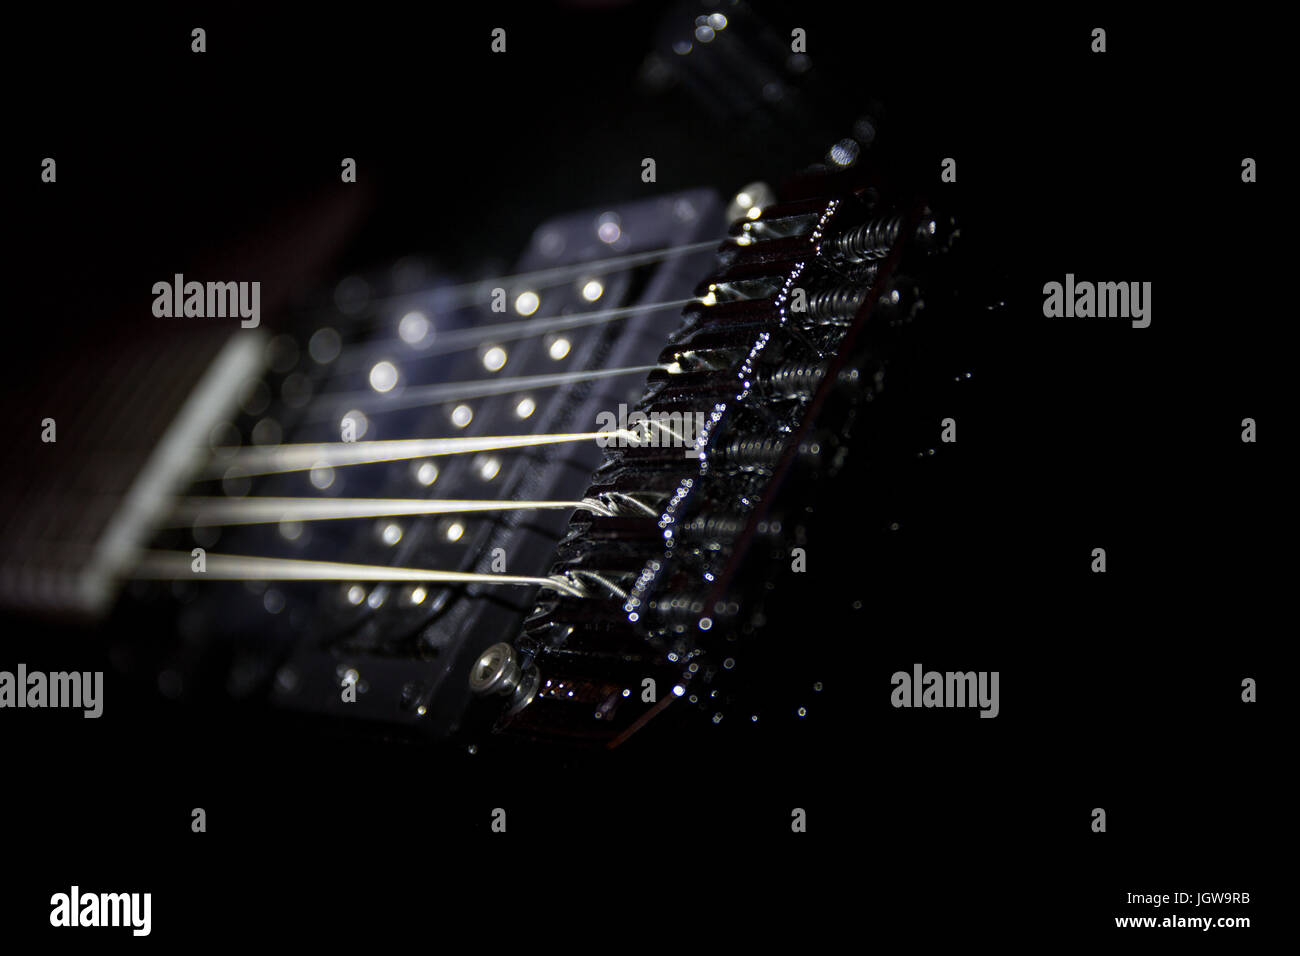 Guitar strings, Shallow depth of field. - Stock Image